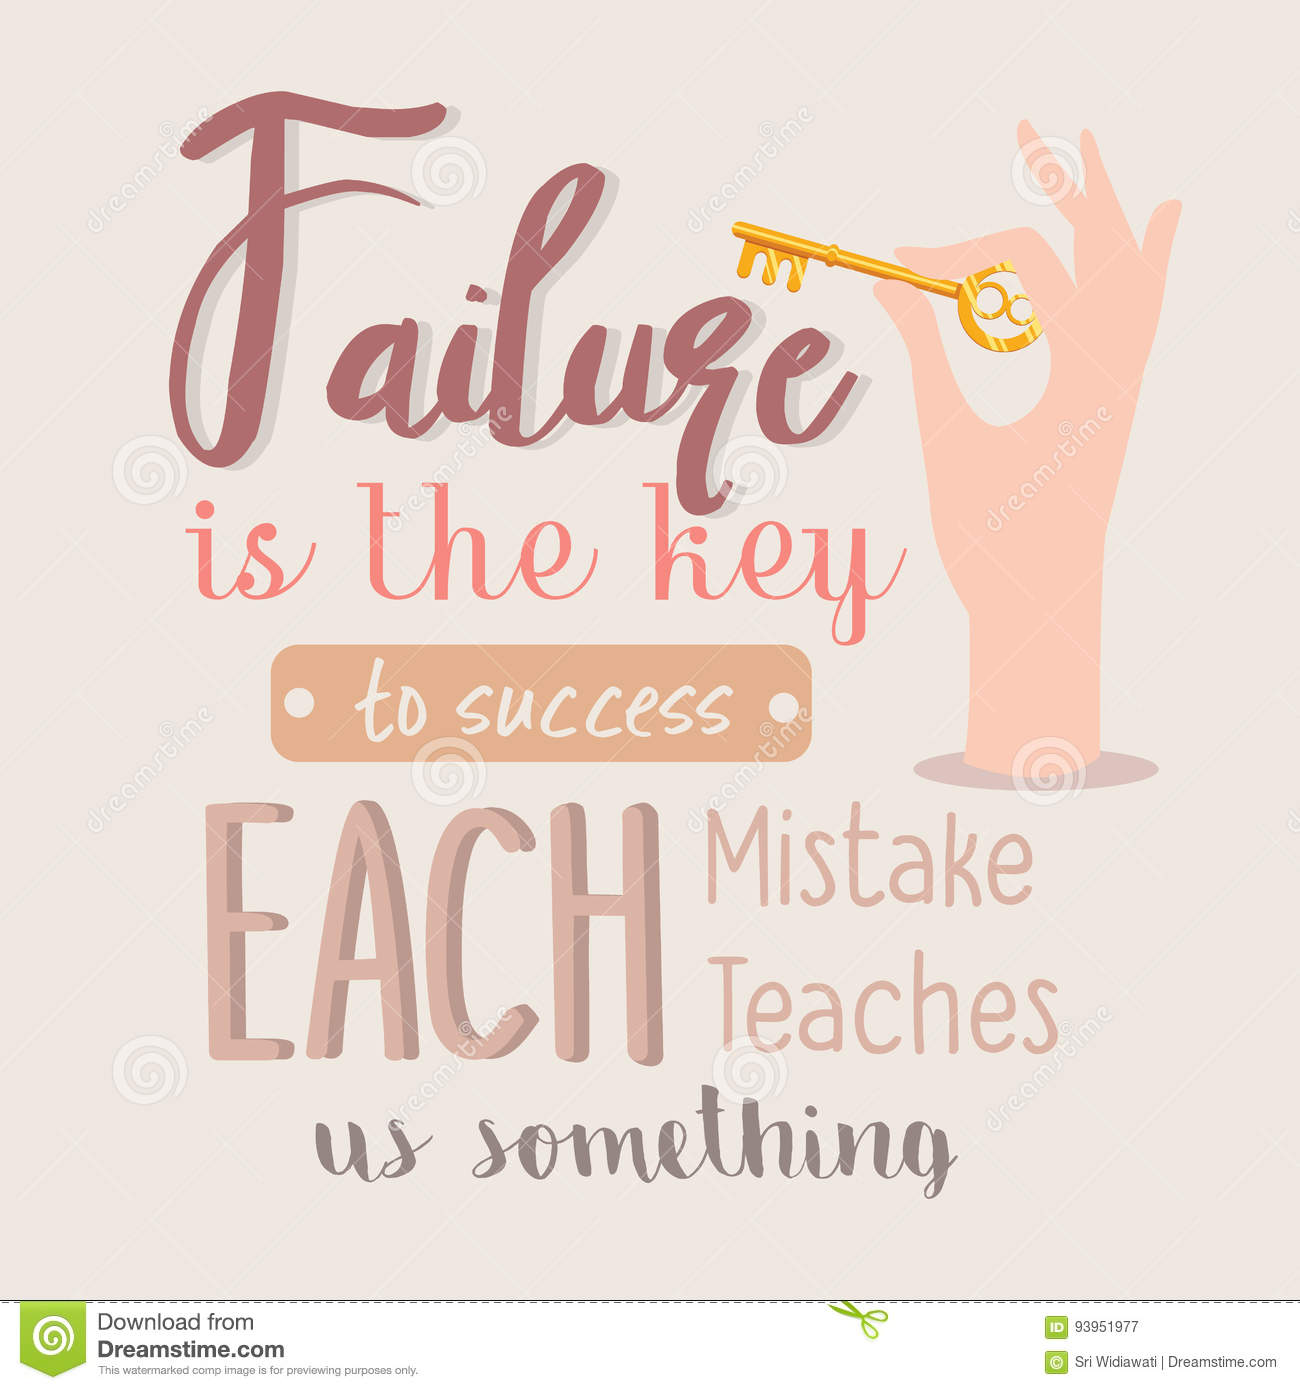 mistakes failure and successful action The actions you take to move past failure and reach success will define you in the end advertisement failure can leave an open wound and it's unwise to ignore it.